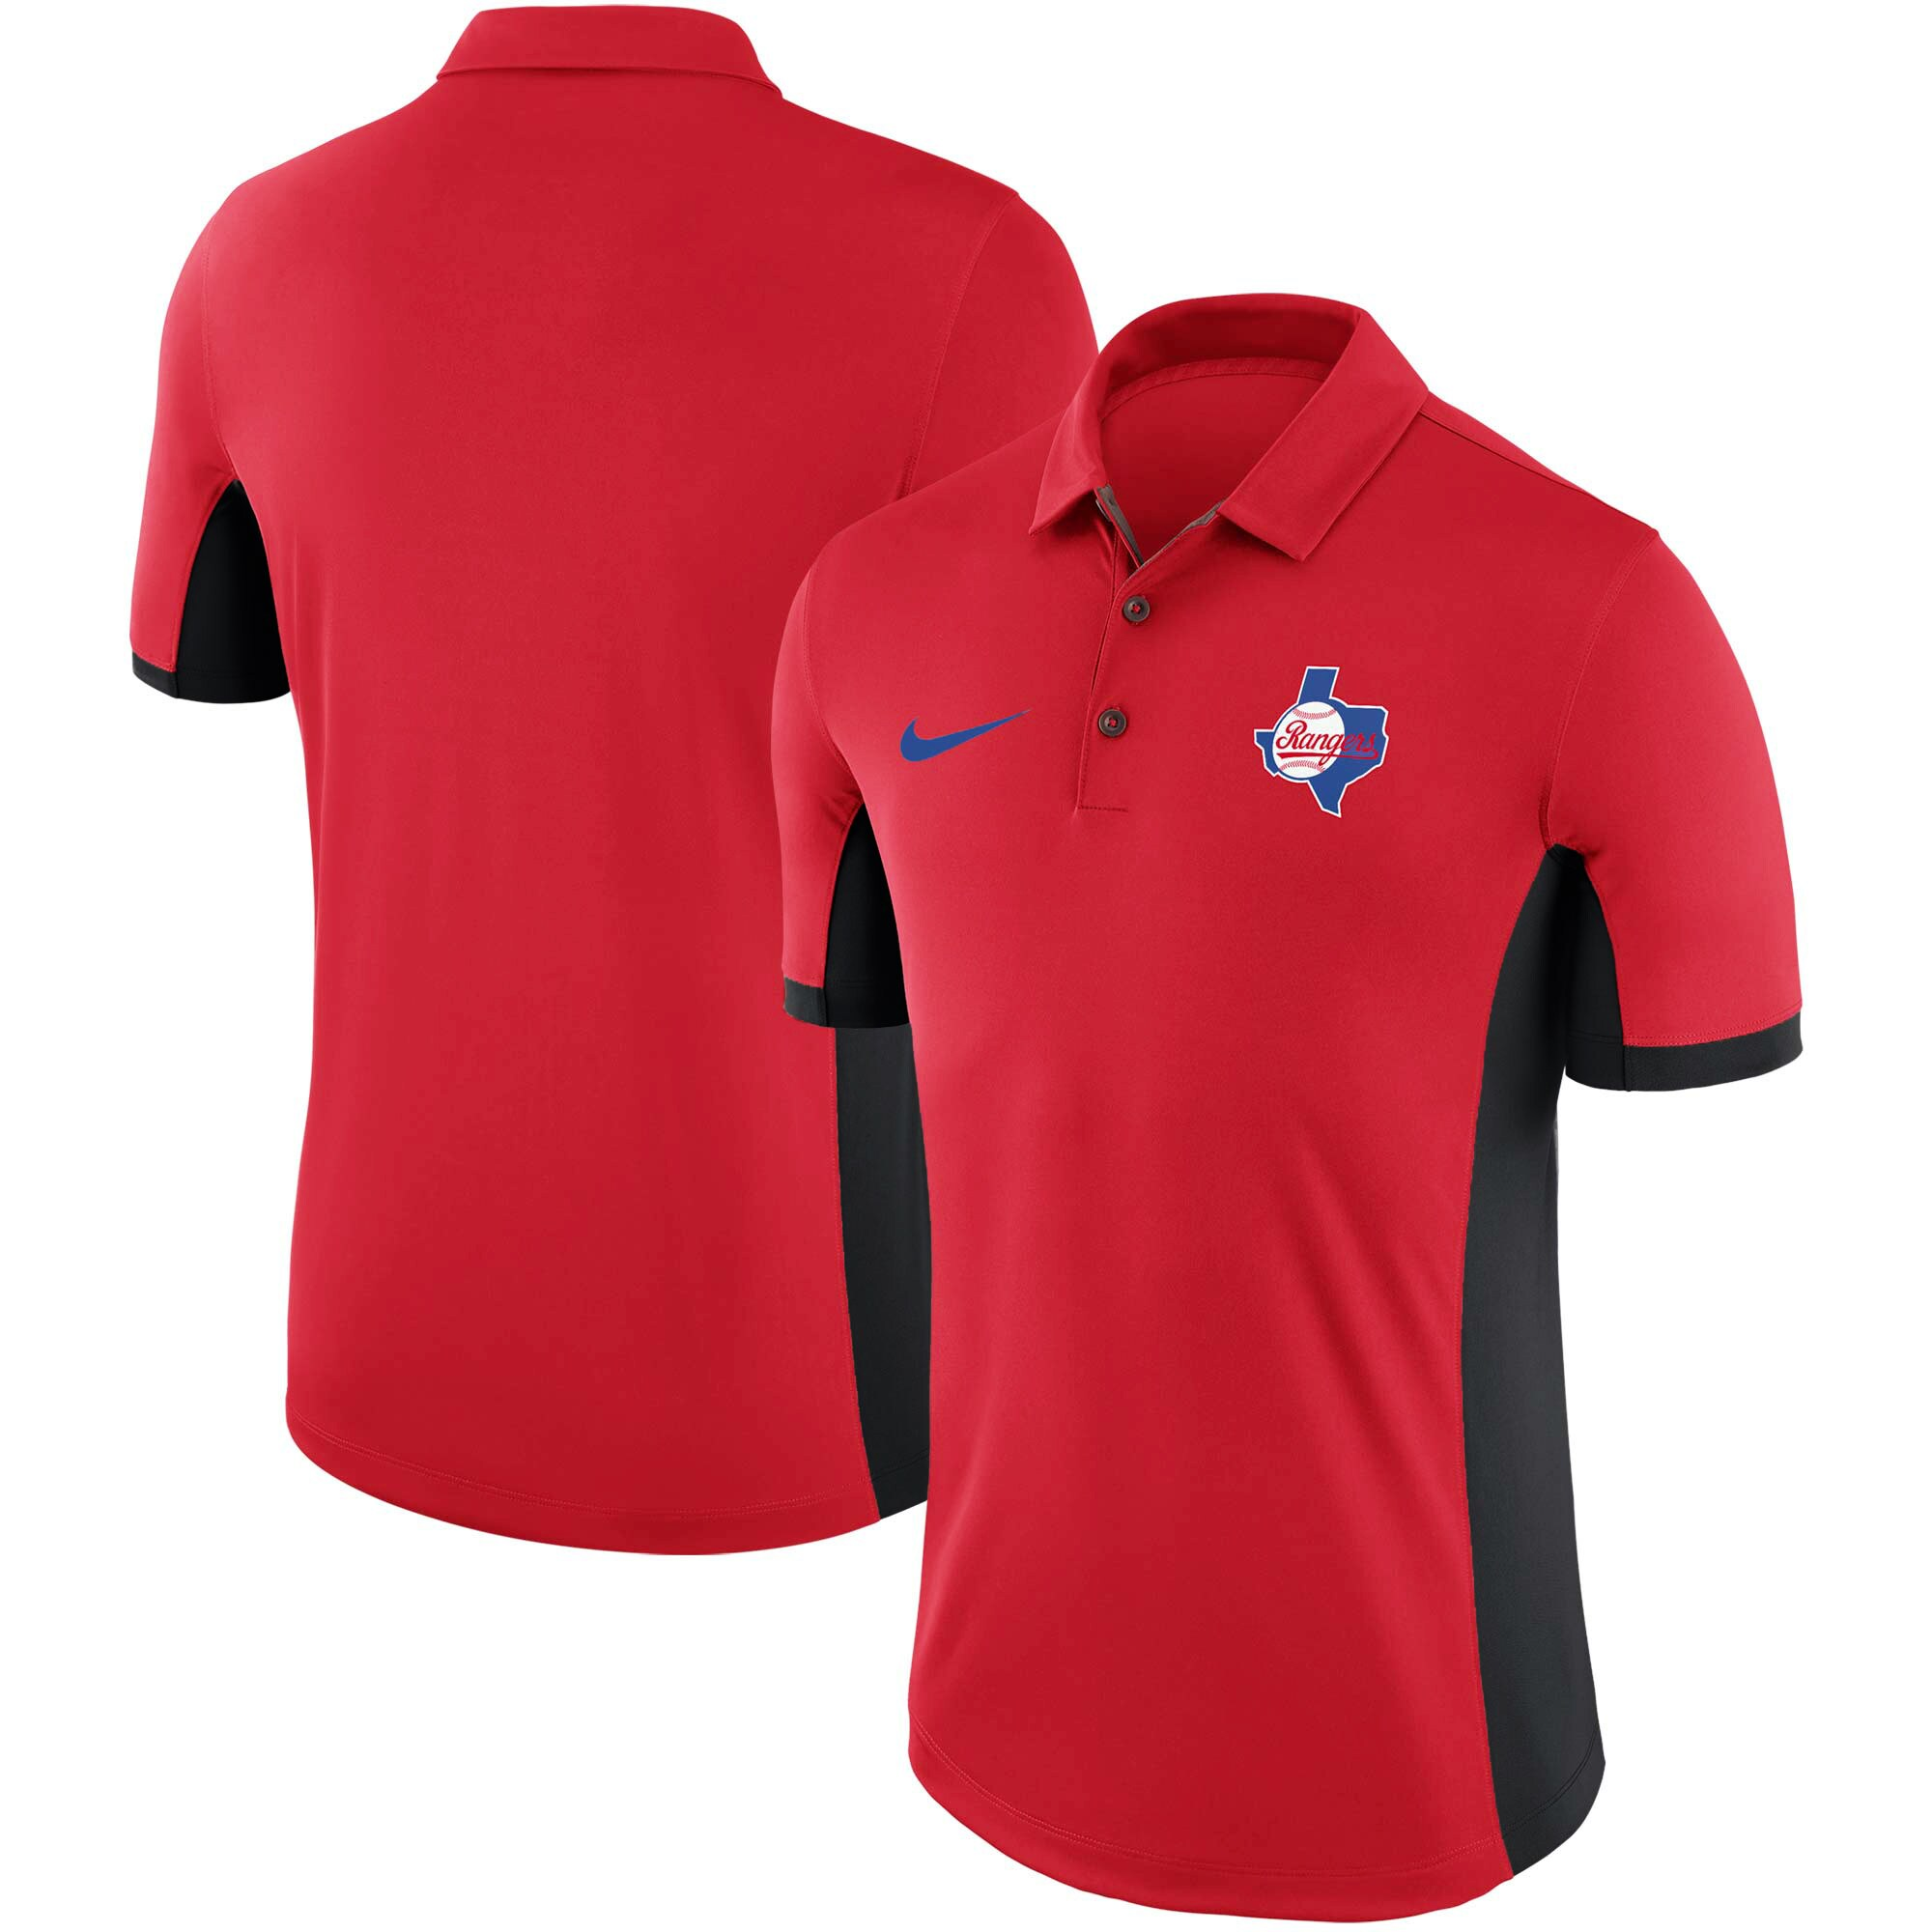 Texas Rangers Nike Performance Franchise Polo - Red